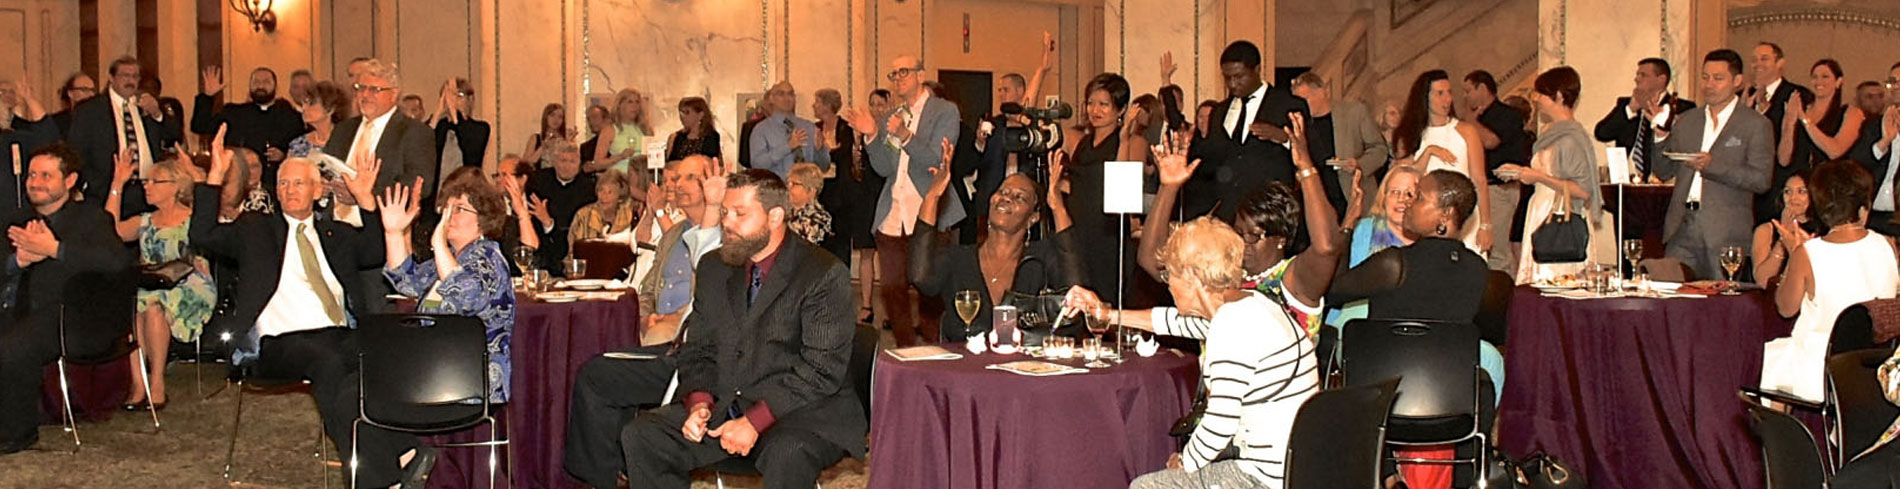 A group of people at an event supporting Chicago Hearing Society.